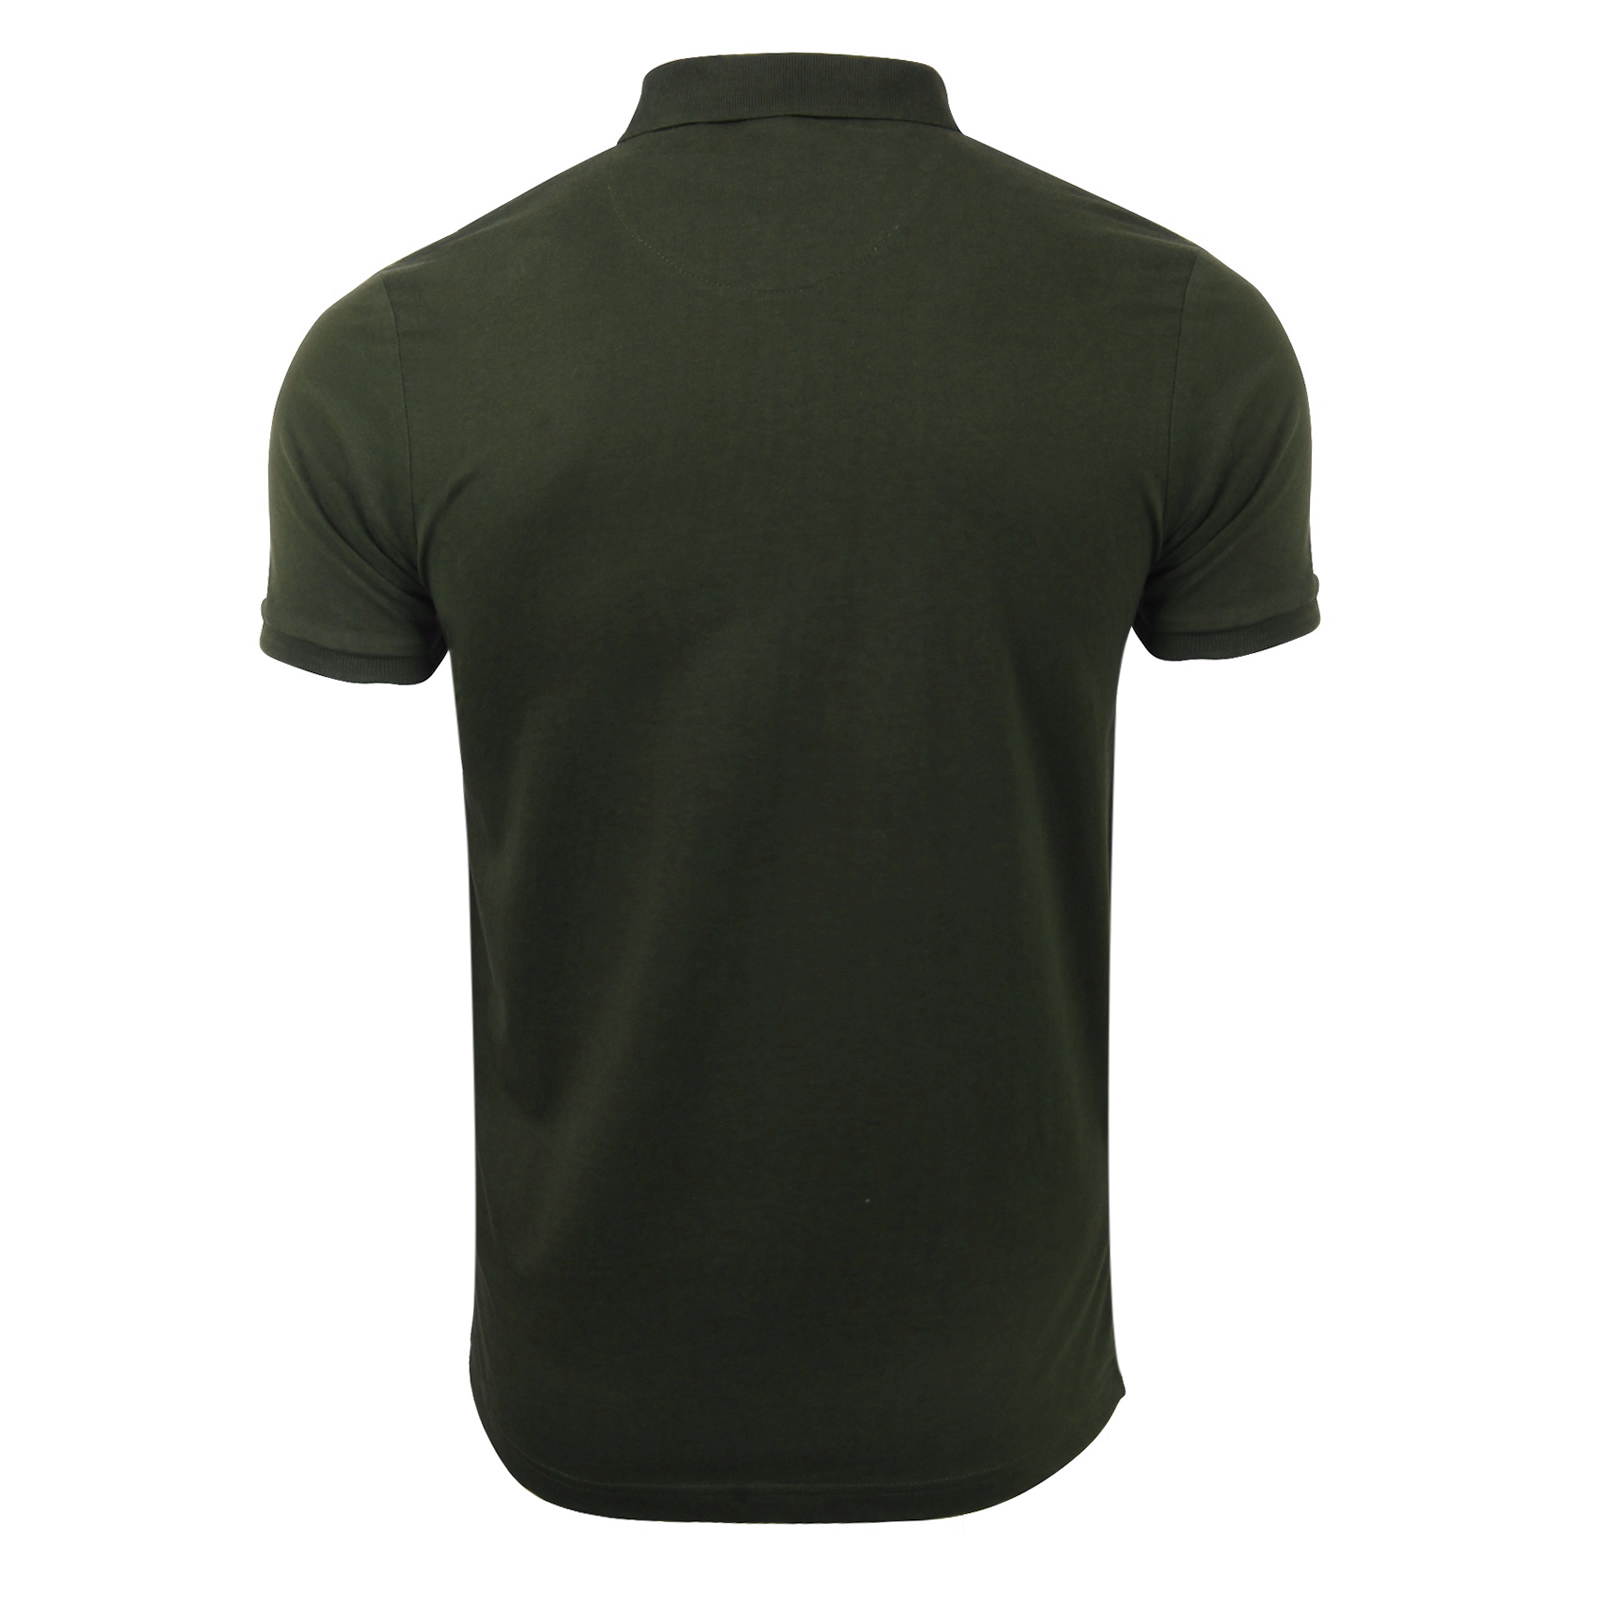 Mens-Polo-T-Shirt-Brave-Soul-Julius-Cotton-Collared-Short-Sleeve-Casual-Top thumbnail 12